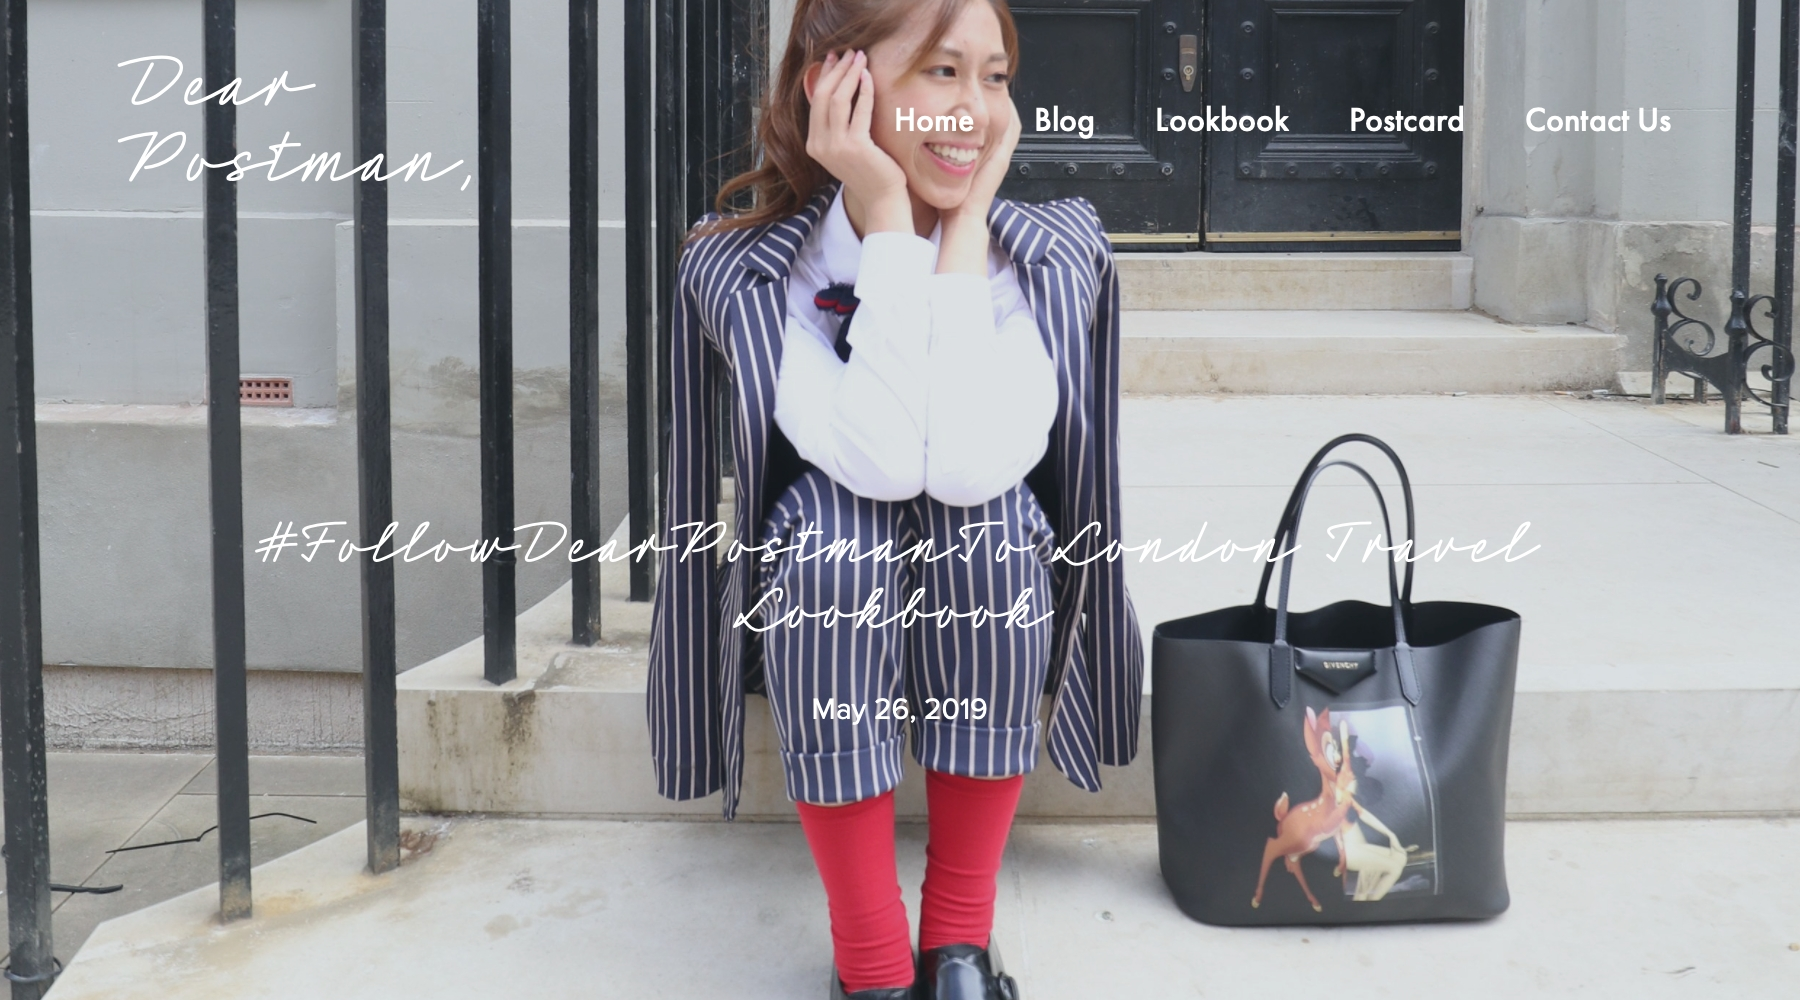 #FollowDearPostmanTo London Travel Lookbook